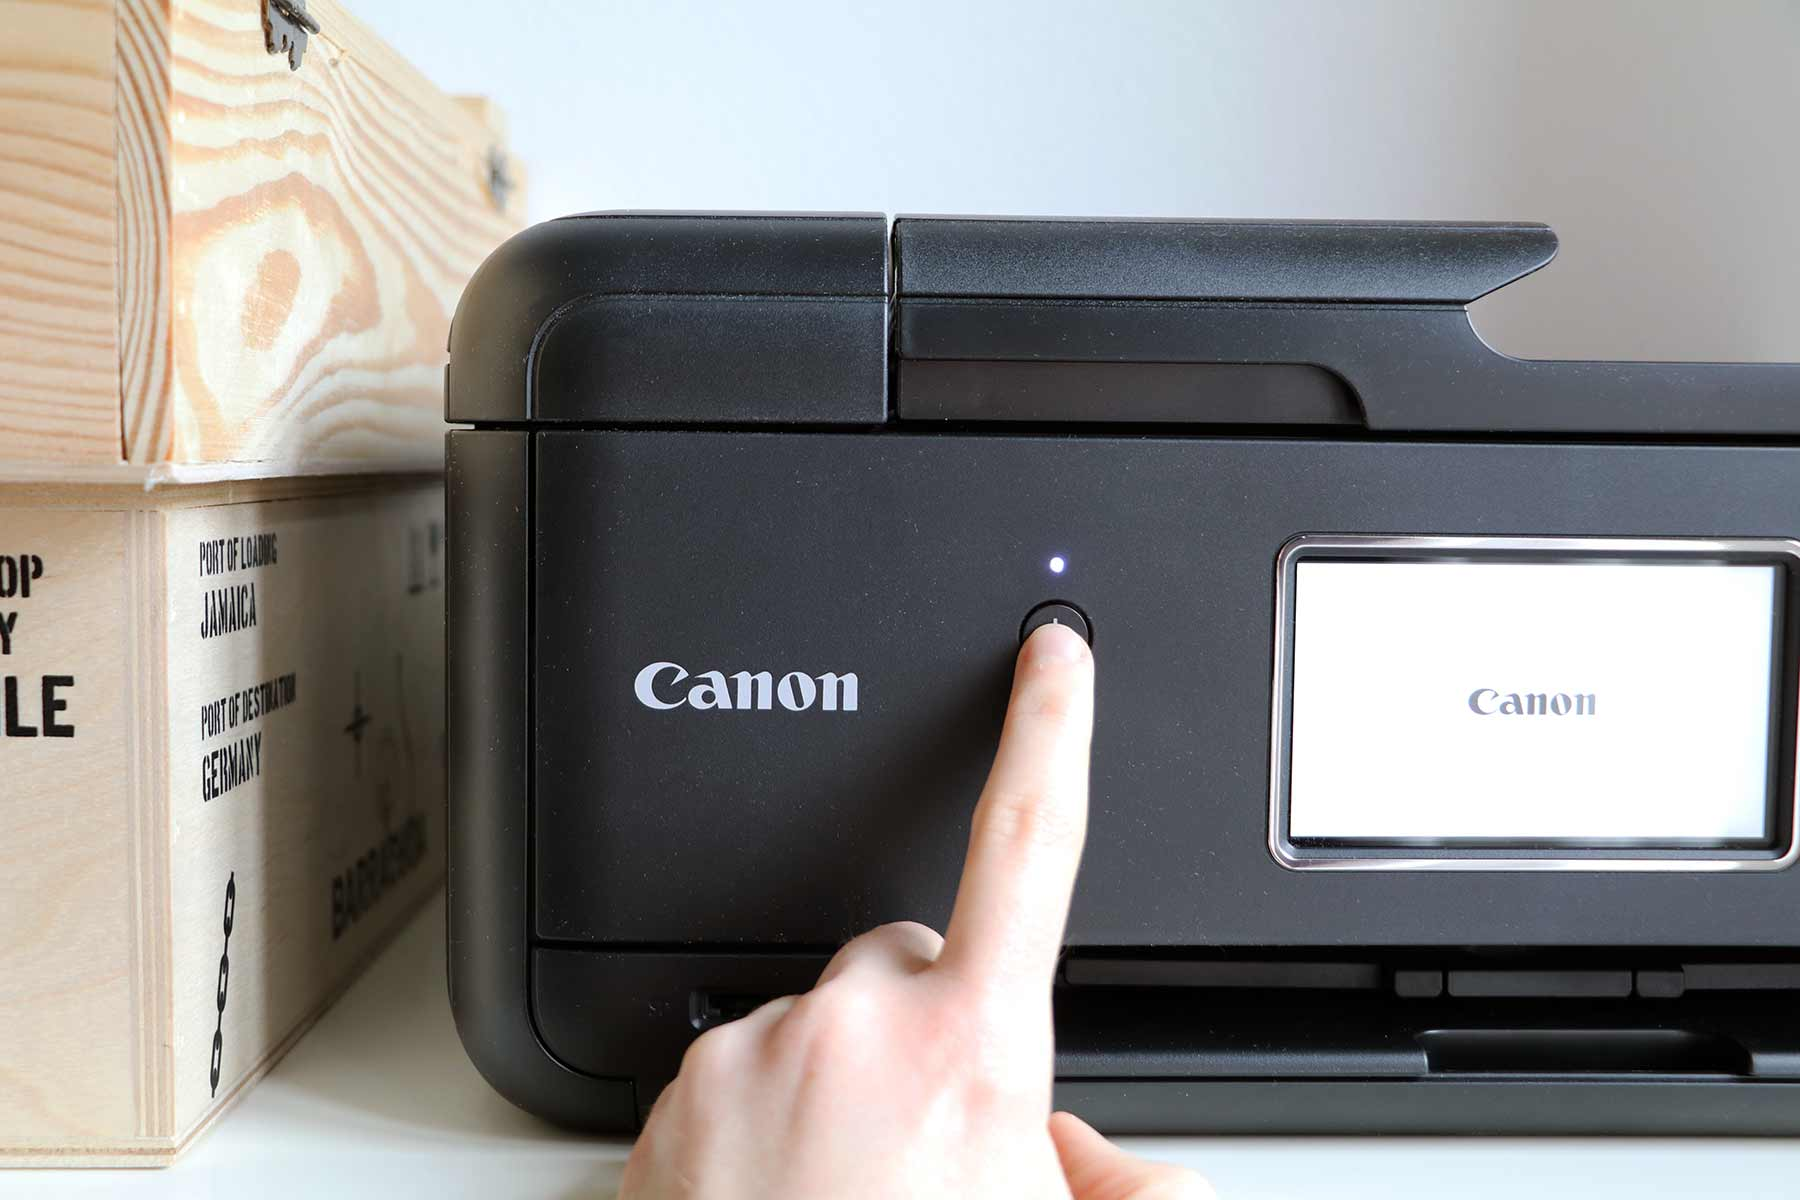 Testbericht: Canon PIXMA TR8550 Multifunktions-Drucker Canon-PIXMA-TR8550-Testbericht_04